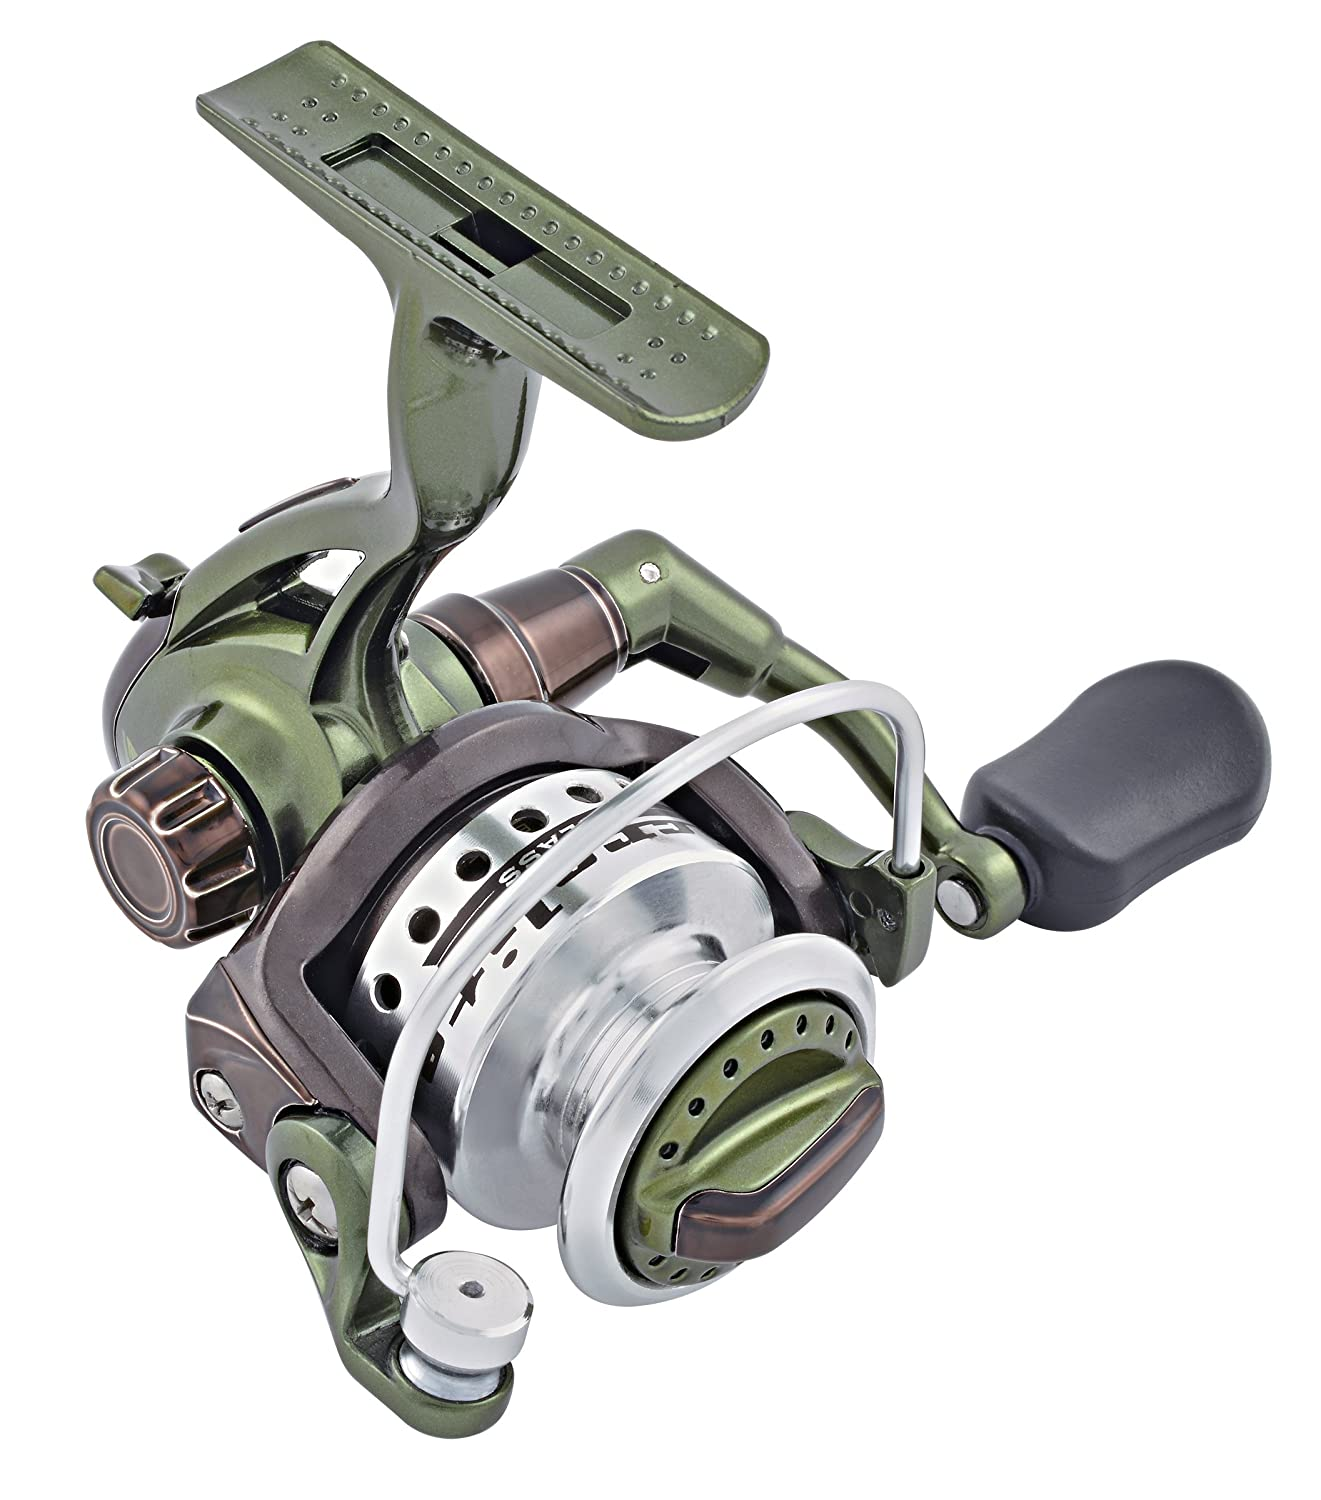 SouthBend Microlite S-Class Spinning Reel